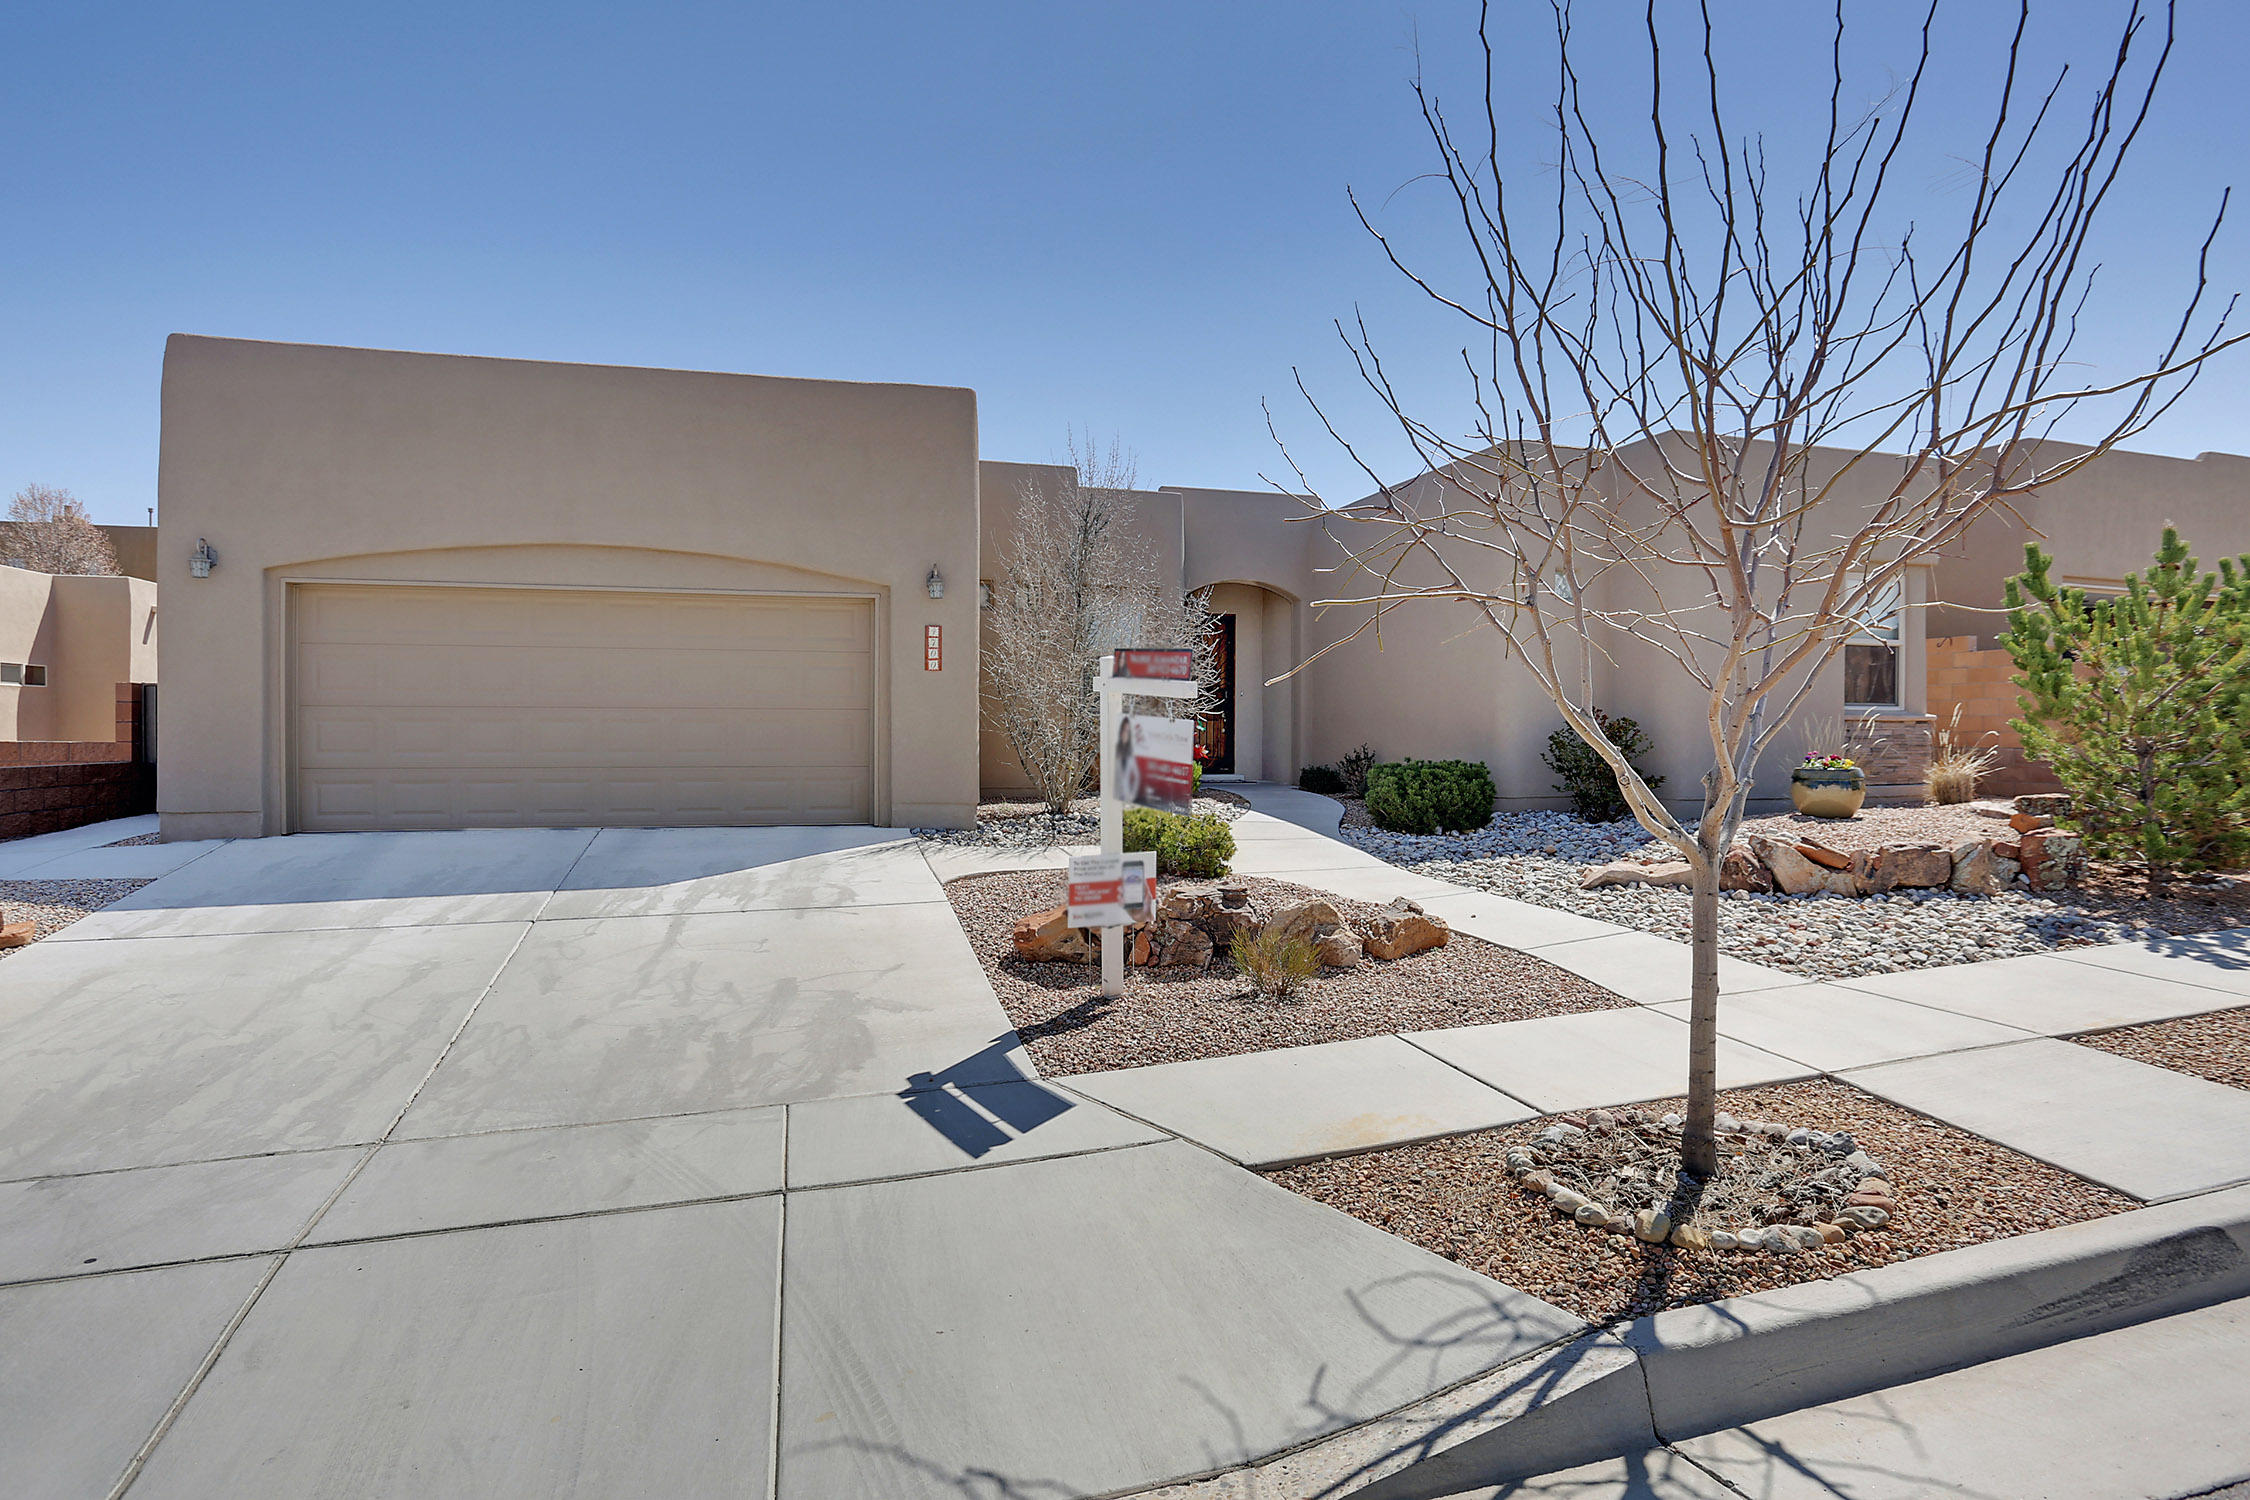 Northwest Albuquerque and Northwest Heights Homes for Sale -  Cul De Sac,  4700 NW Cayetana Place